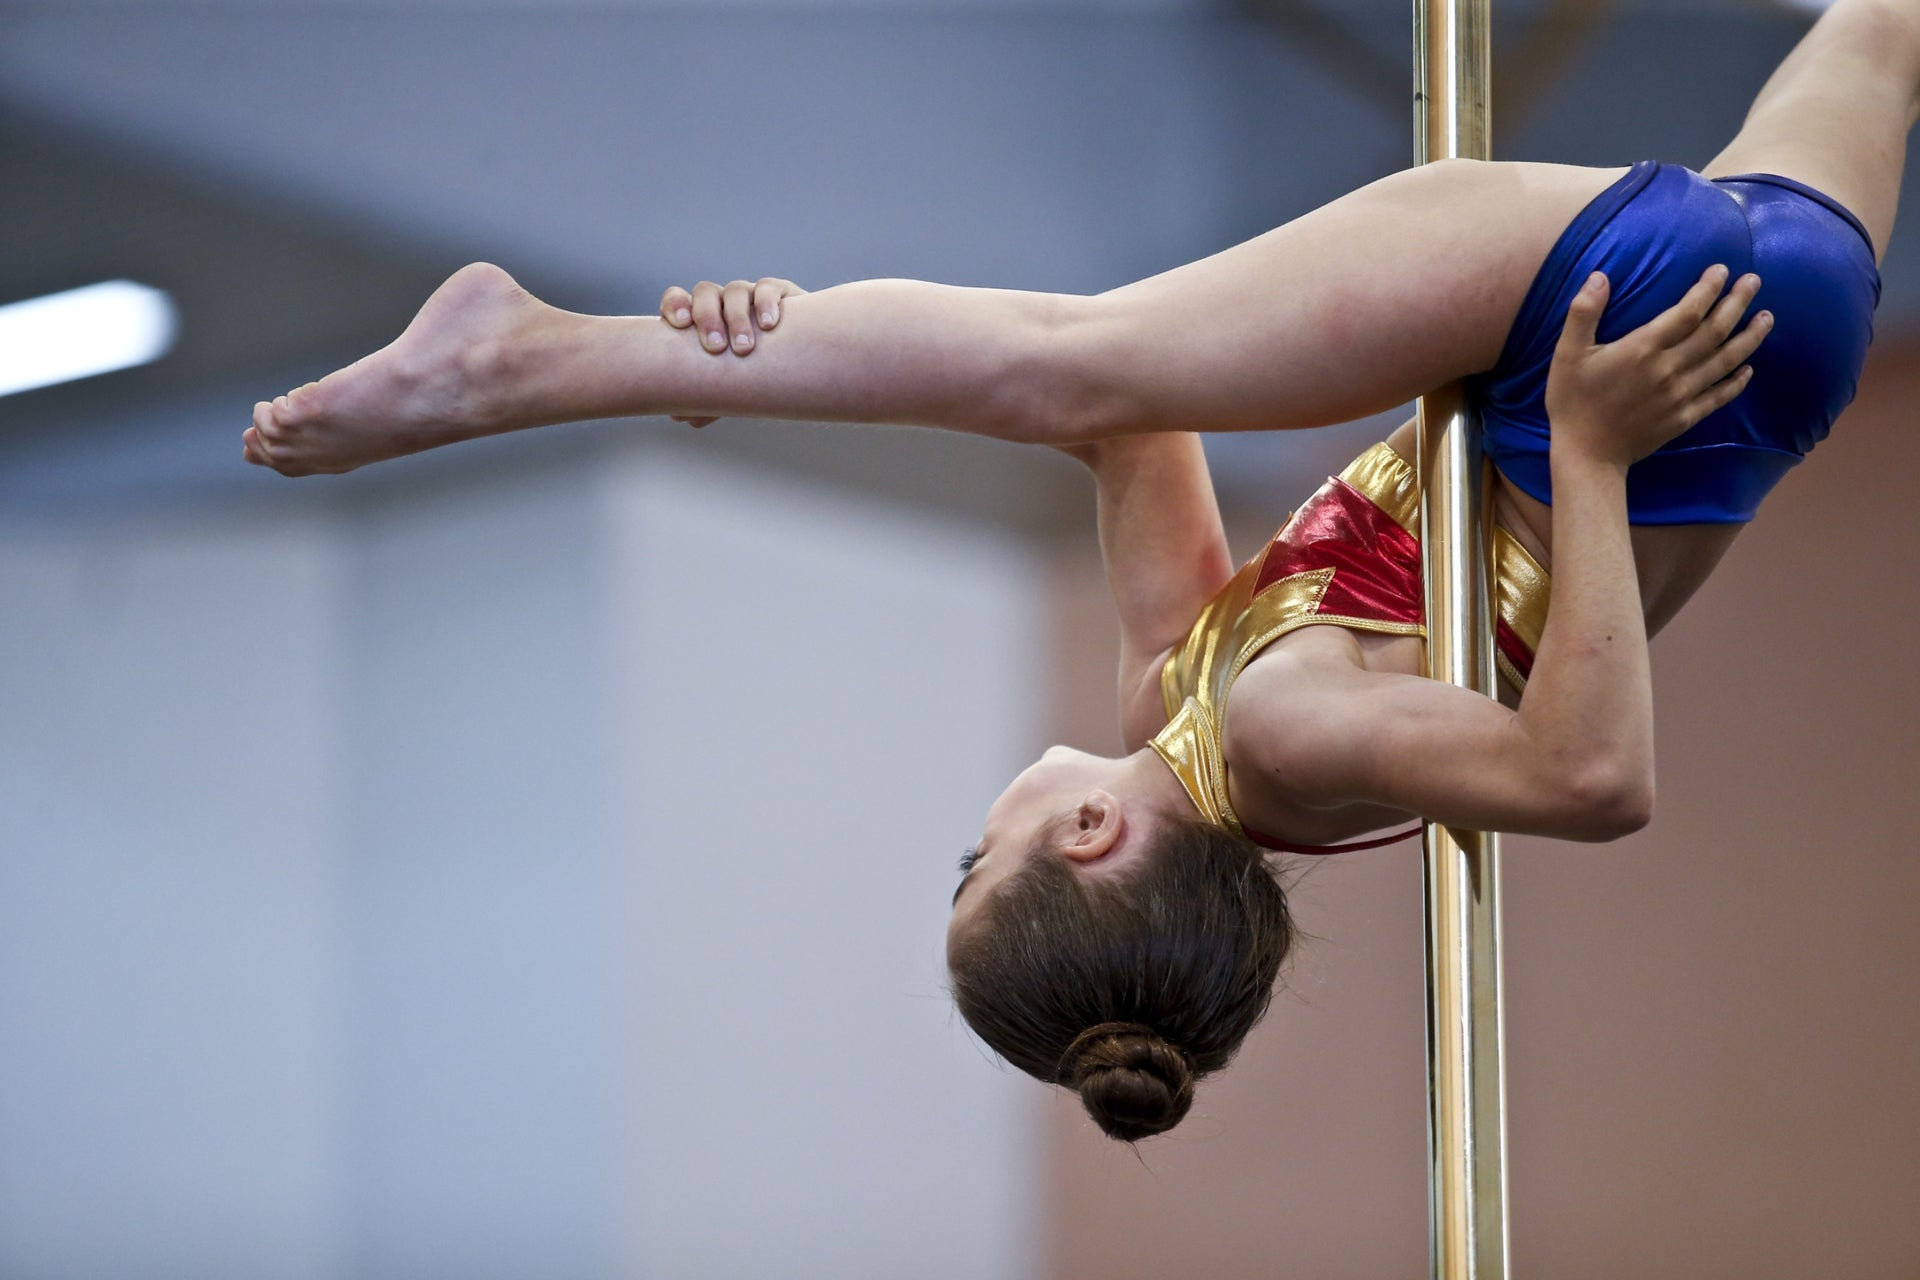 'Why not classical ballet?' I suggested, 'Or modern dance?' No, she shot back: Dancing on a pole.